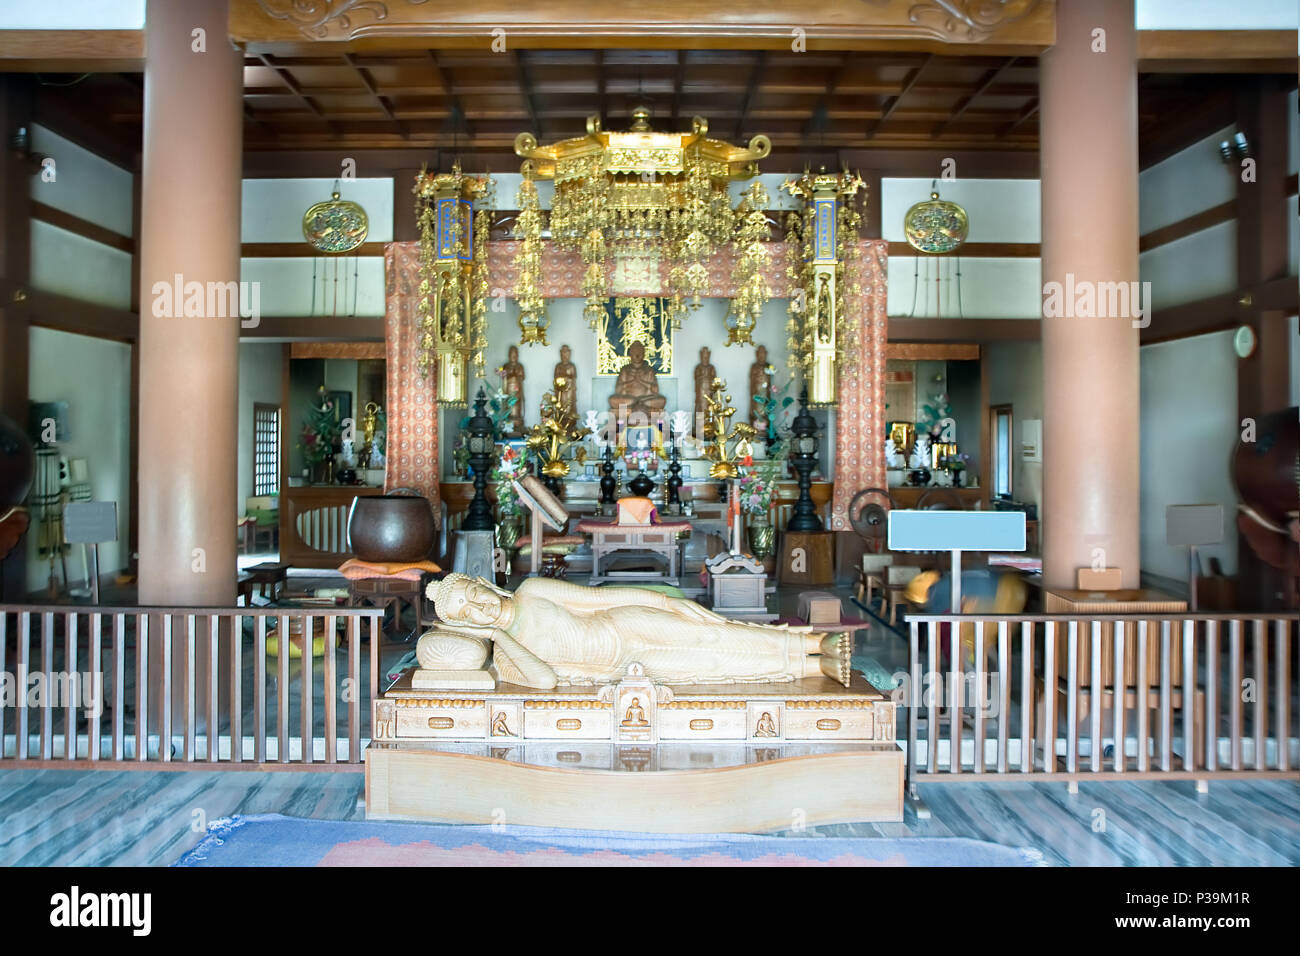 Interior of a Japanese Buddhist temple and monastery